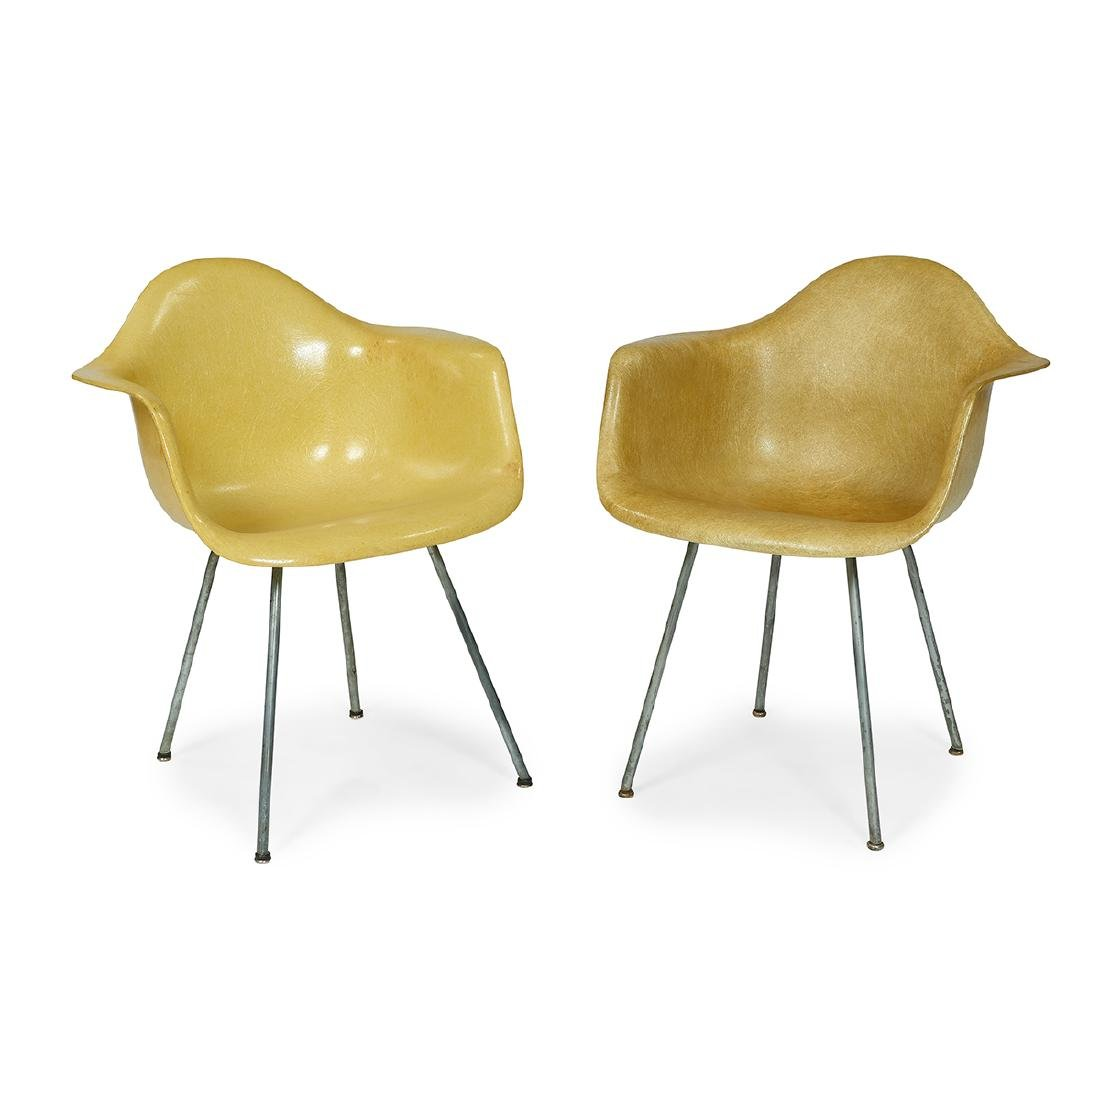 Charles & Ray Eames shell chairs, two, one Zenith